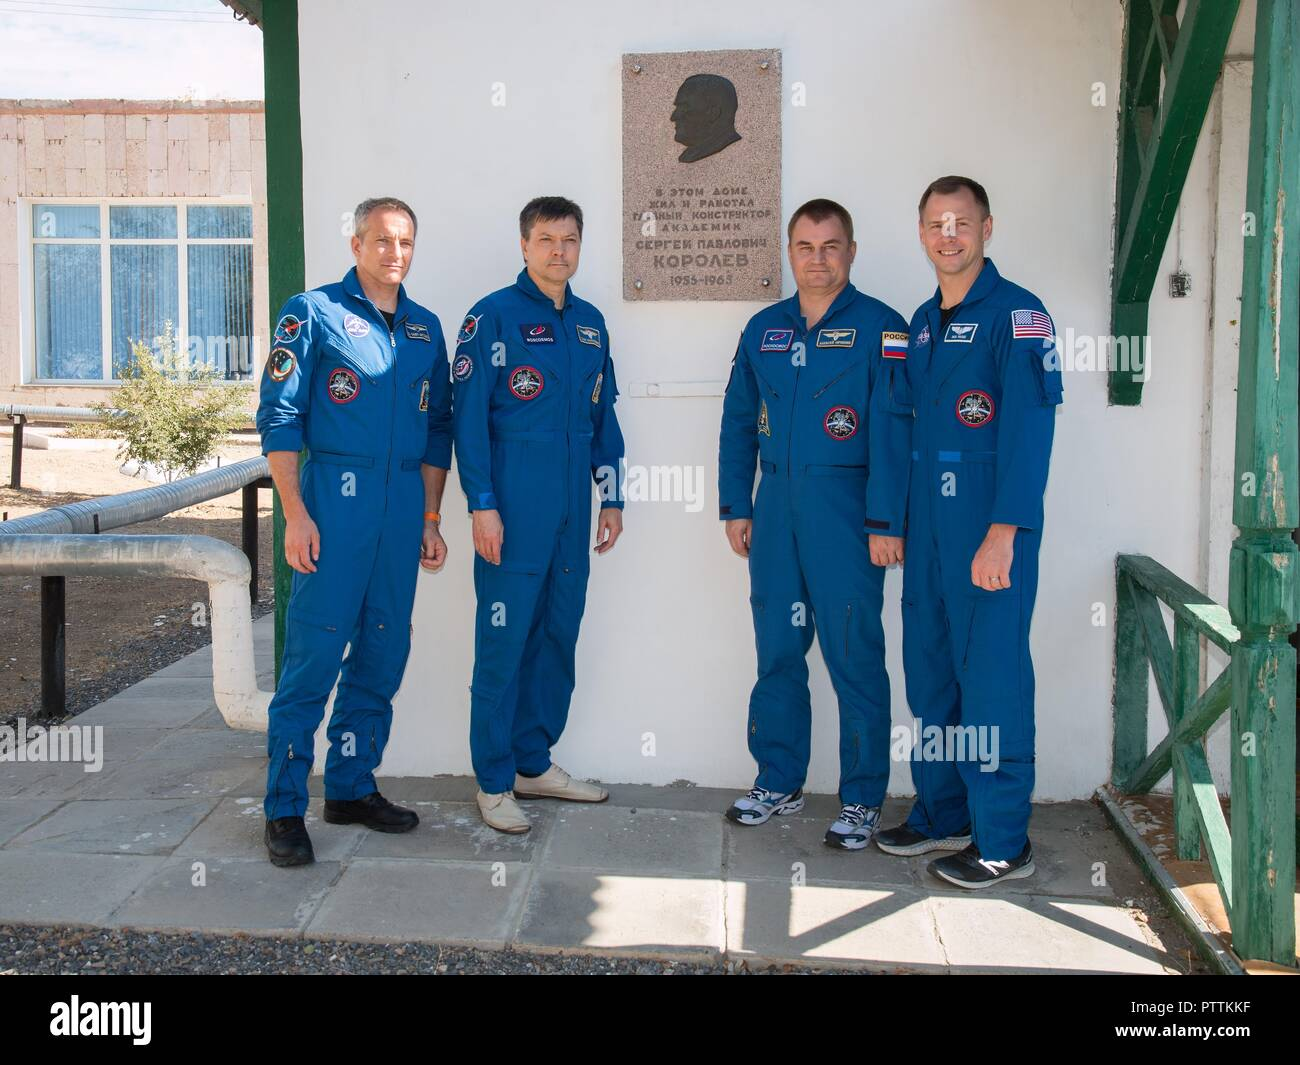 Expedition 57 prime and backup crew pose in front of the cottage where the Russian space icon and Sergei Korolev slept on the night before Yuri Gagarin launched becoming the first human in space at the Baikonur Cosmodrome October 6, 2018 in Baikonur, Kazakhstan.  From left to right are backup crew David Saint-Jacques of the Canadian Space Agency and Oleg Kononenko of Roscosmos, and prime crew Alexey Ovchinin of Roscosmos and Nick Hague of NASA. - Stock Image